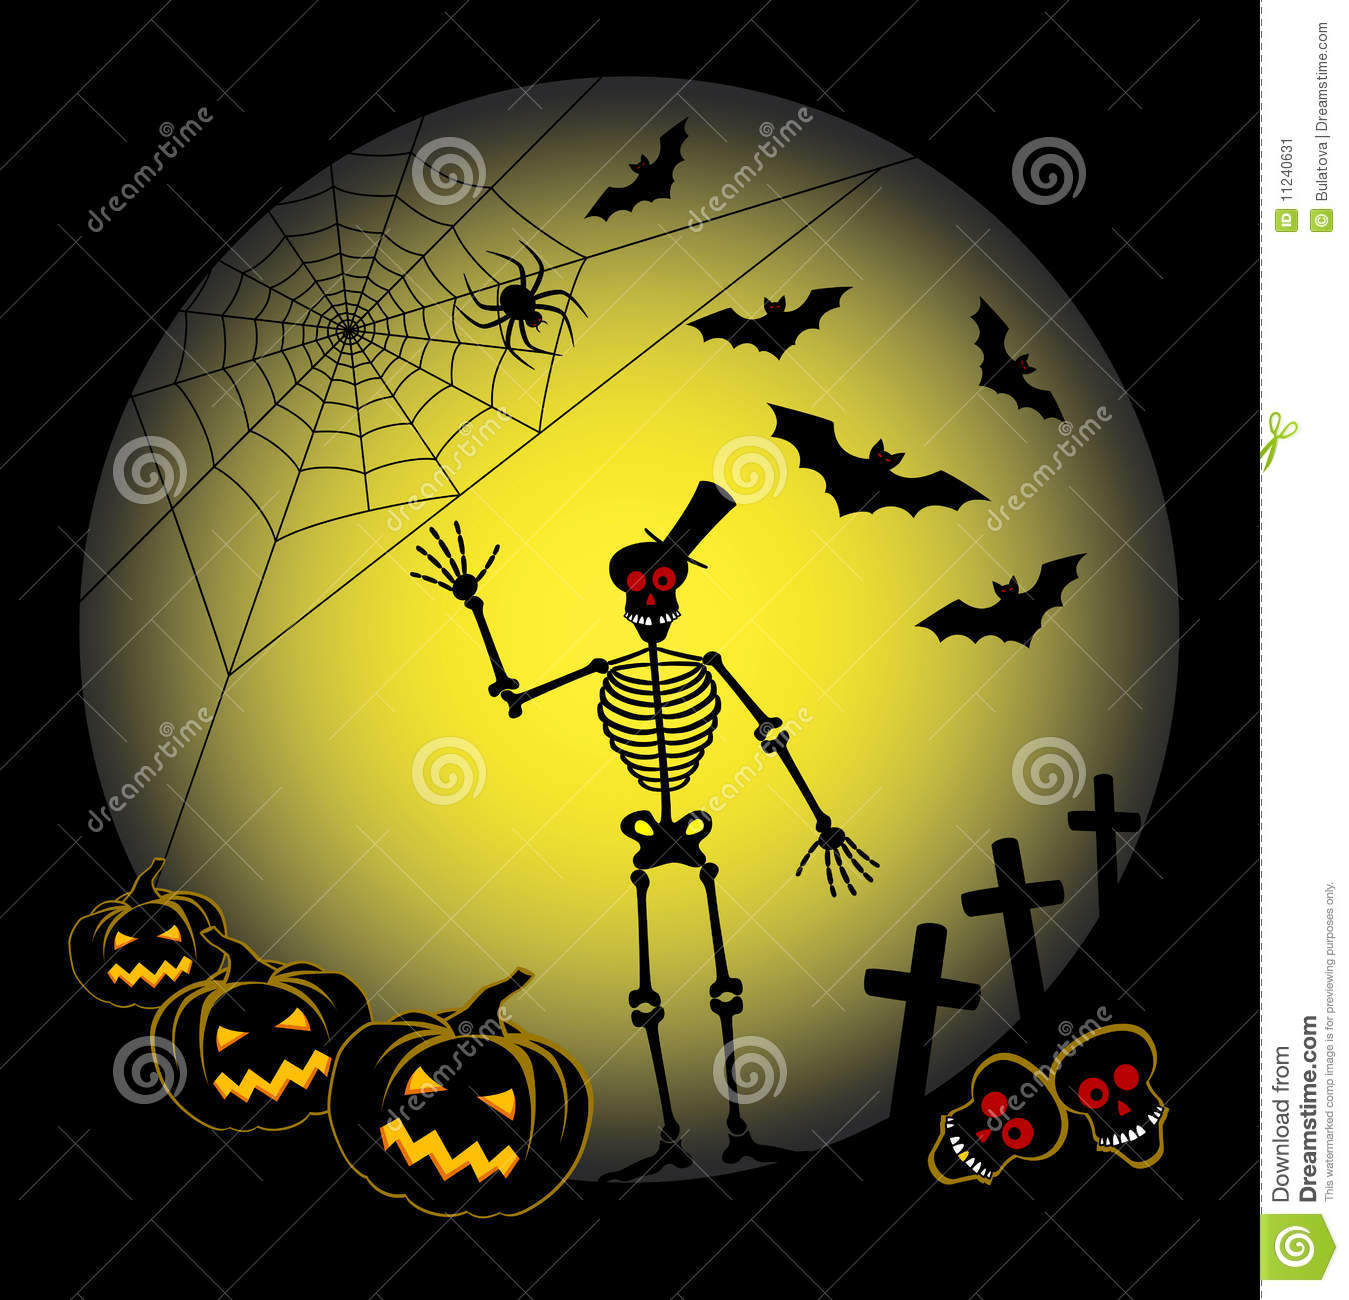 royaltyfree stock photo download scary halloween background